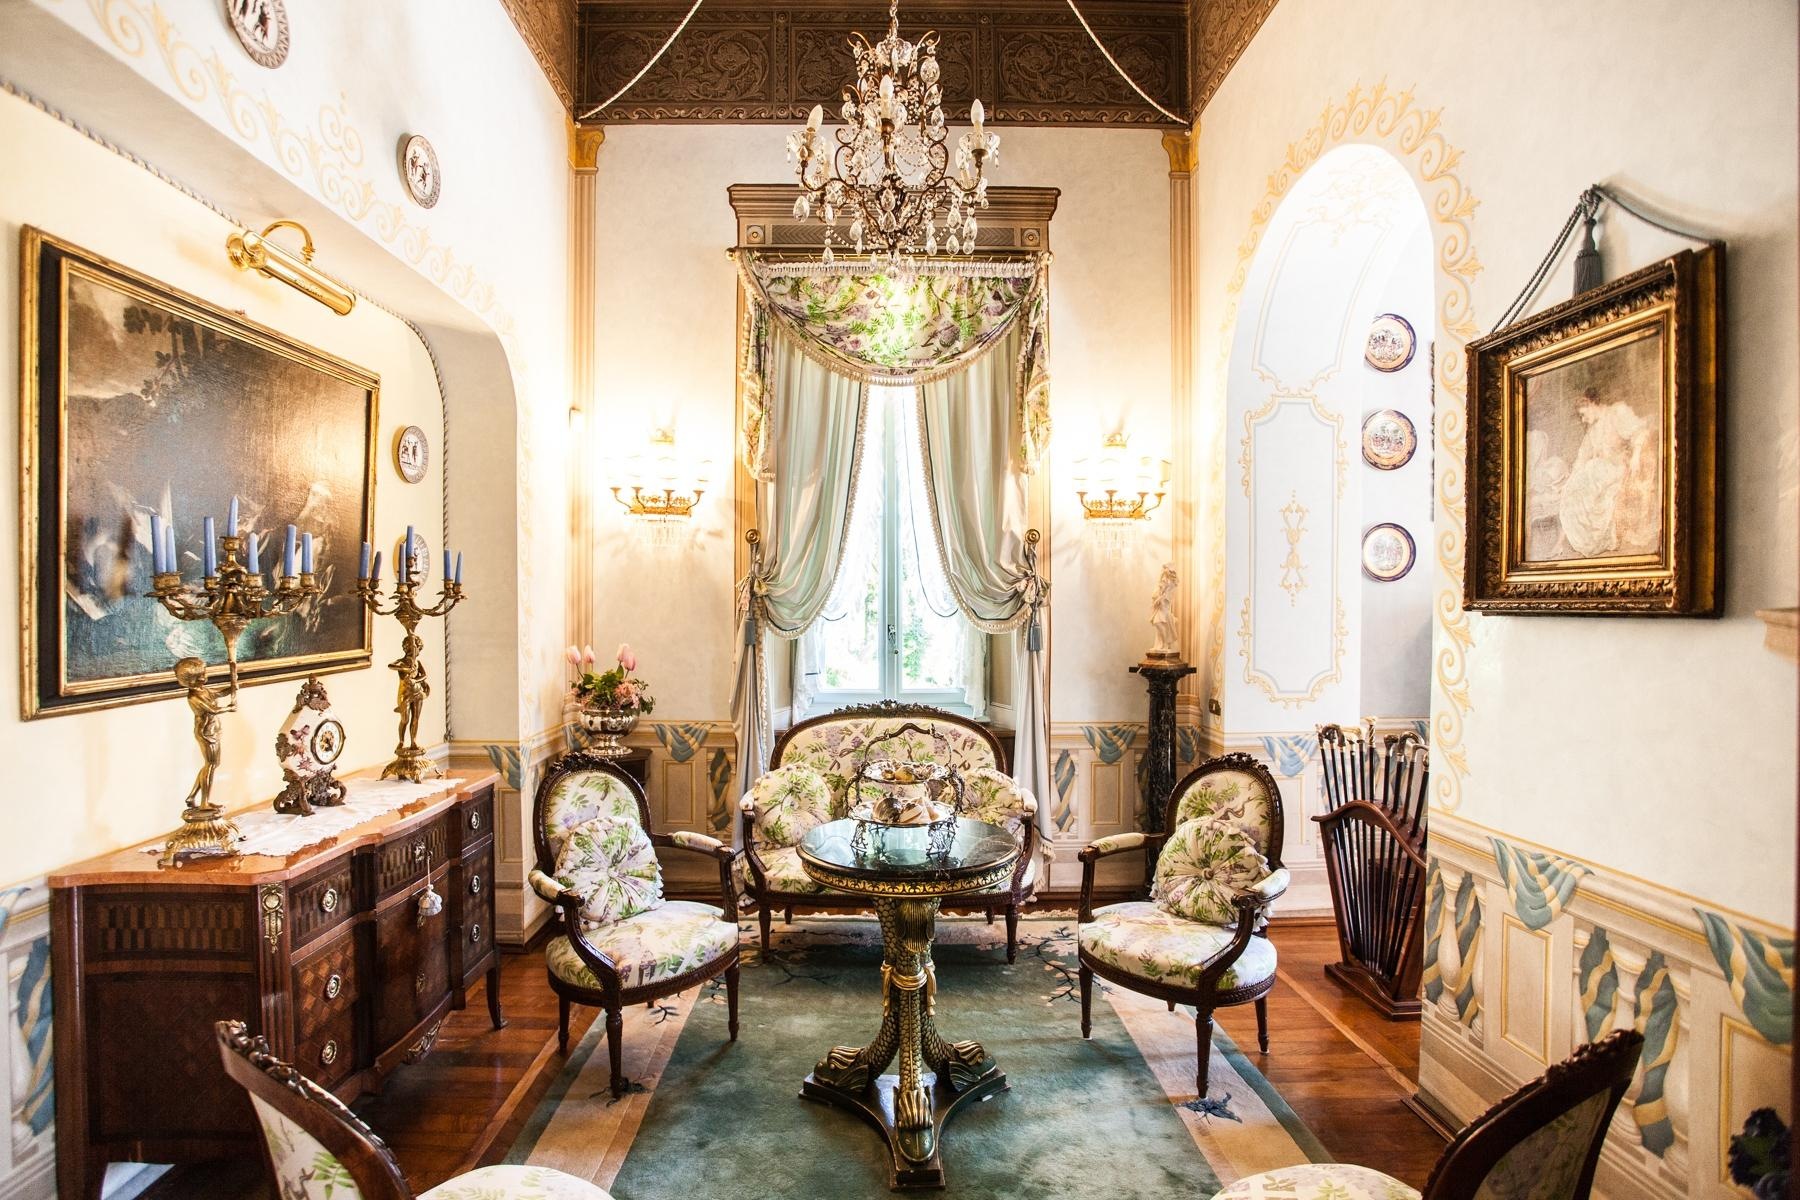 Charming historic villa with private park - 12